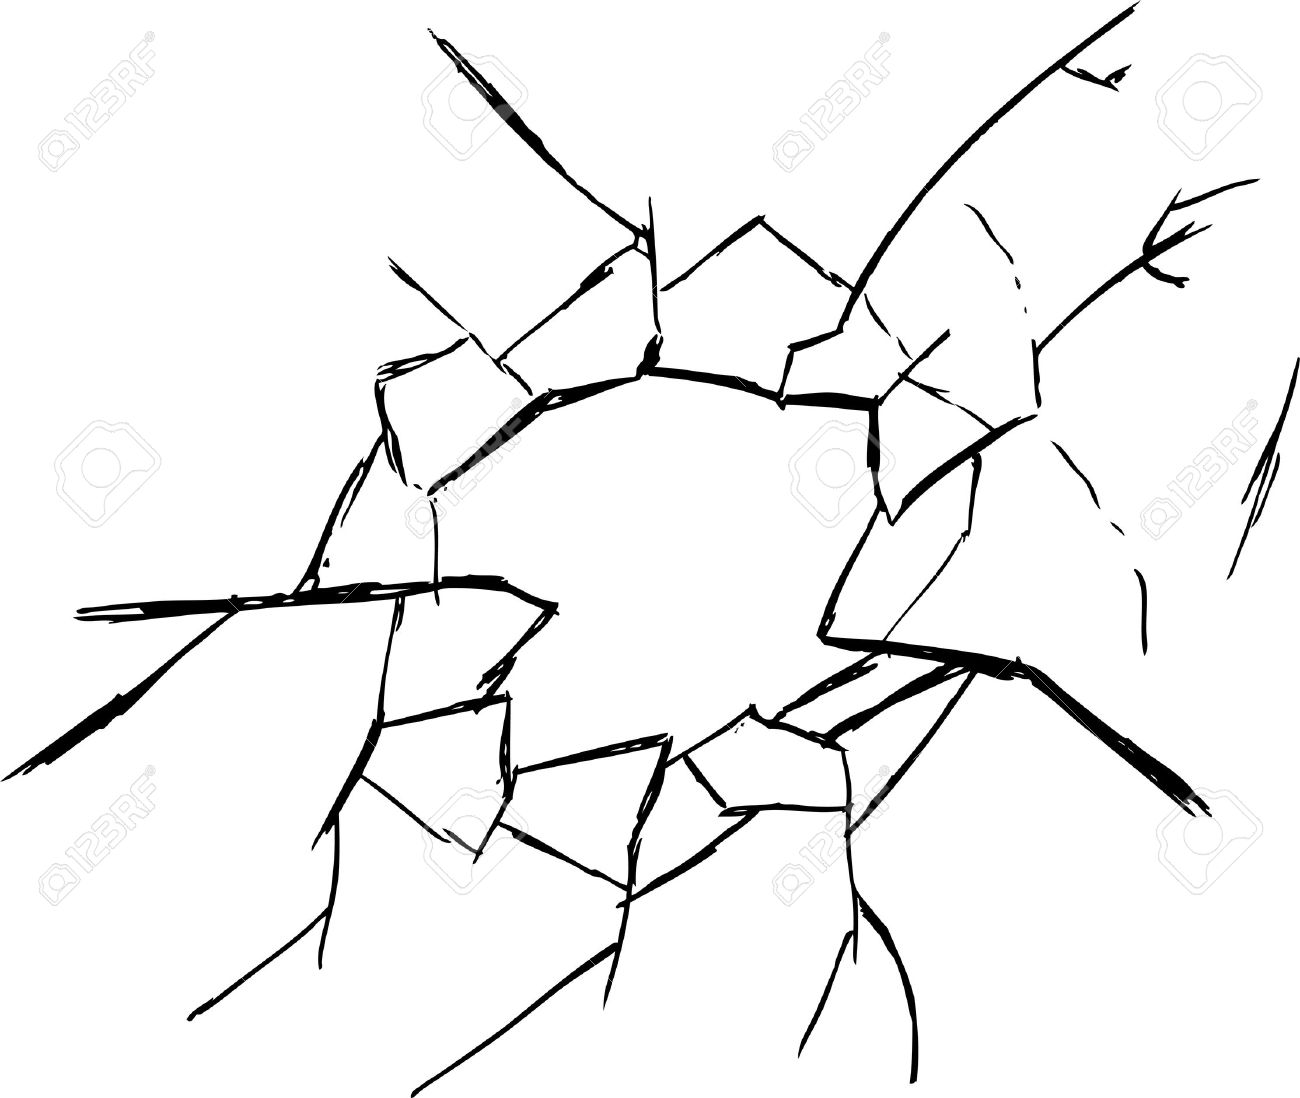 broken glass royalty free cliparts vectors and stock illustration rh 123rf com broken glass vector free download broken glass victorious lyrics